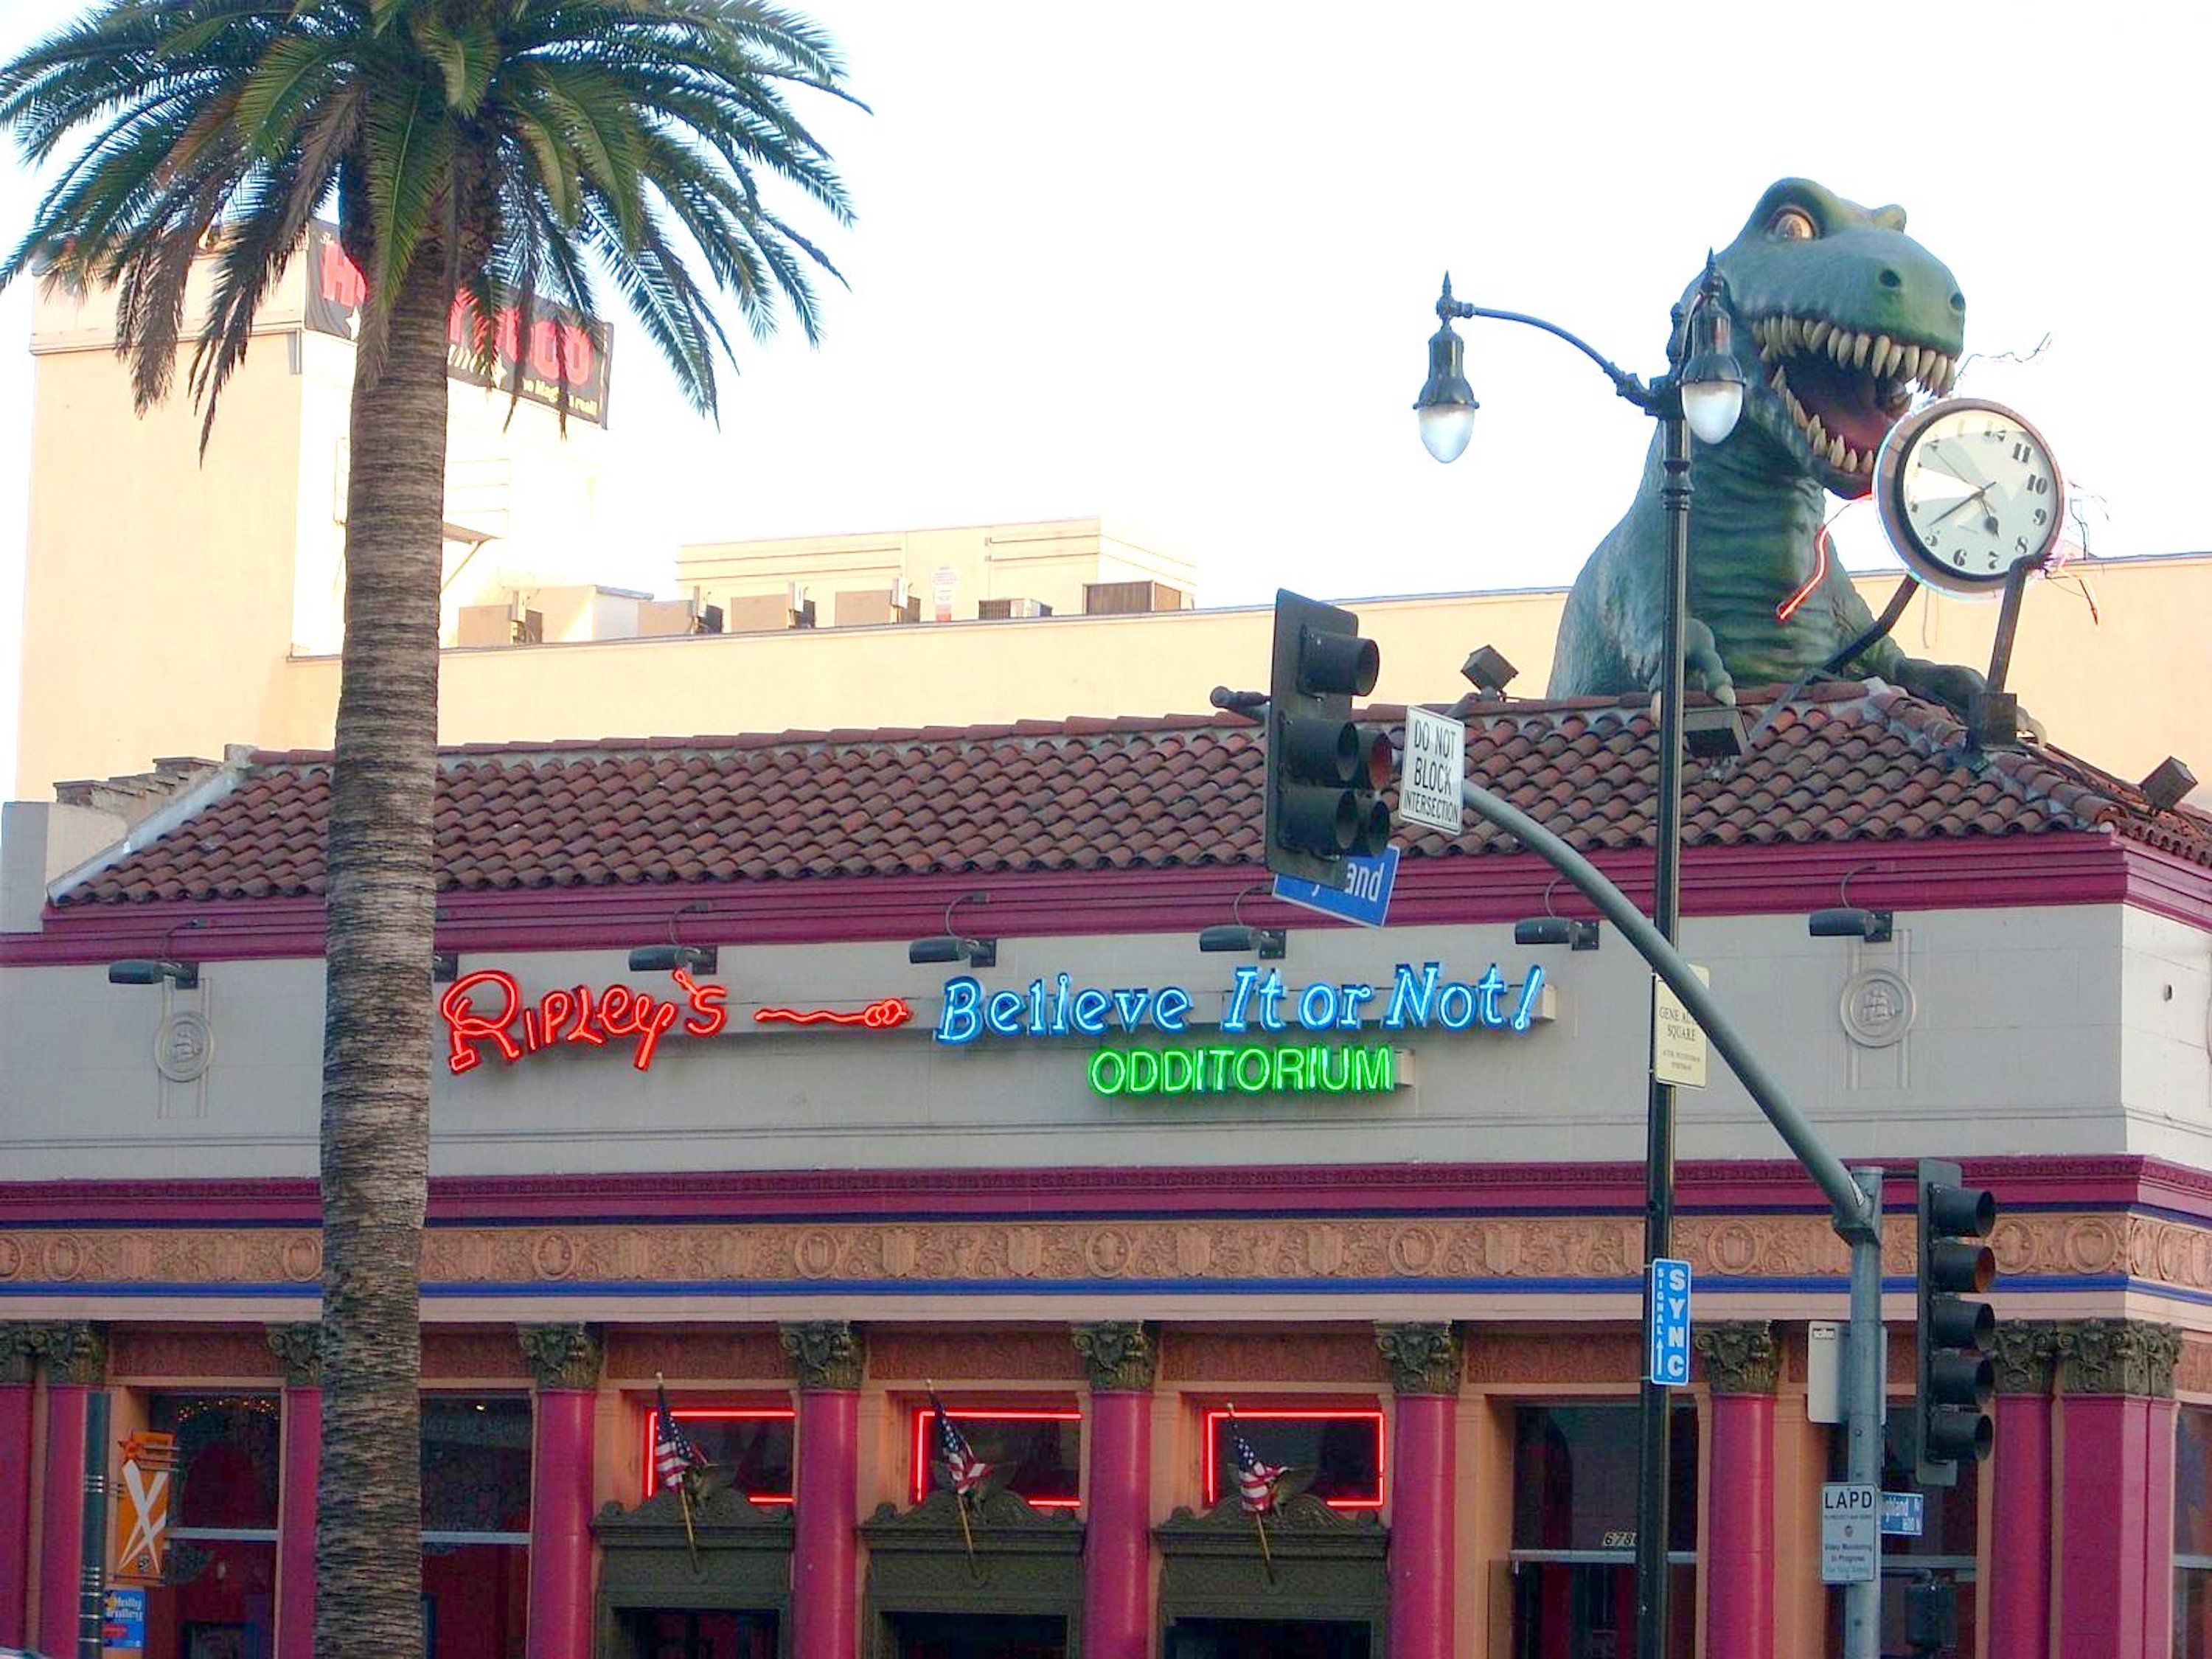 Exterior of Ripley's Believe It or Not! Odditorium on Hollywood Boulevard